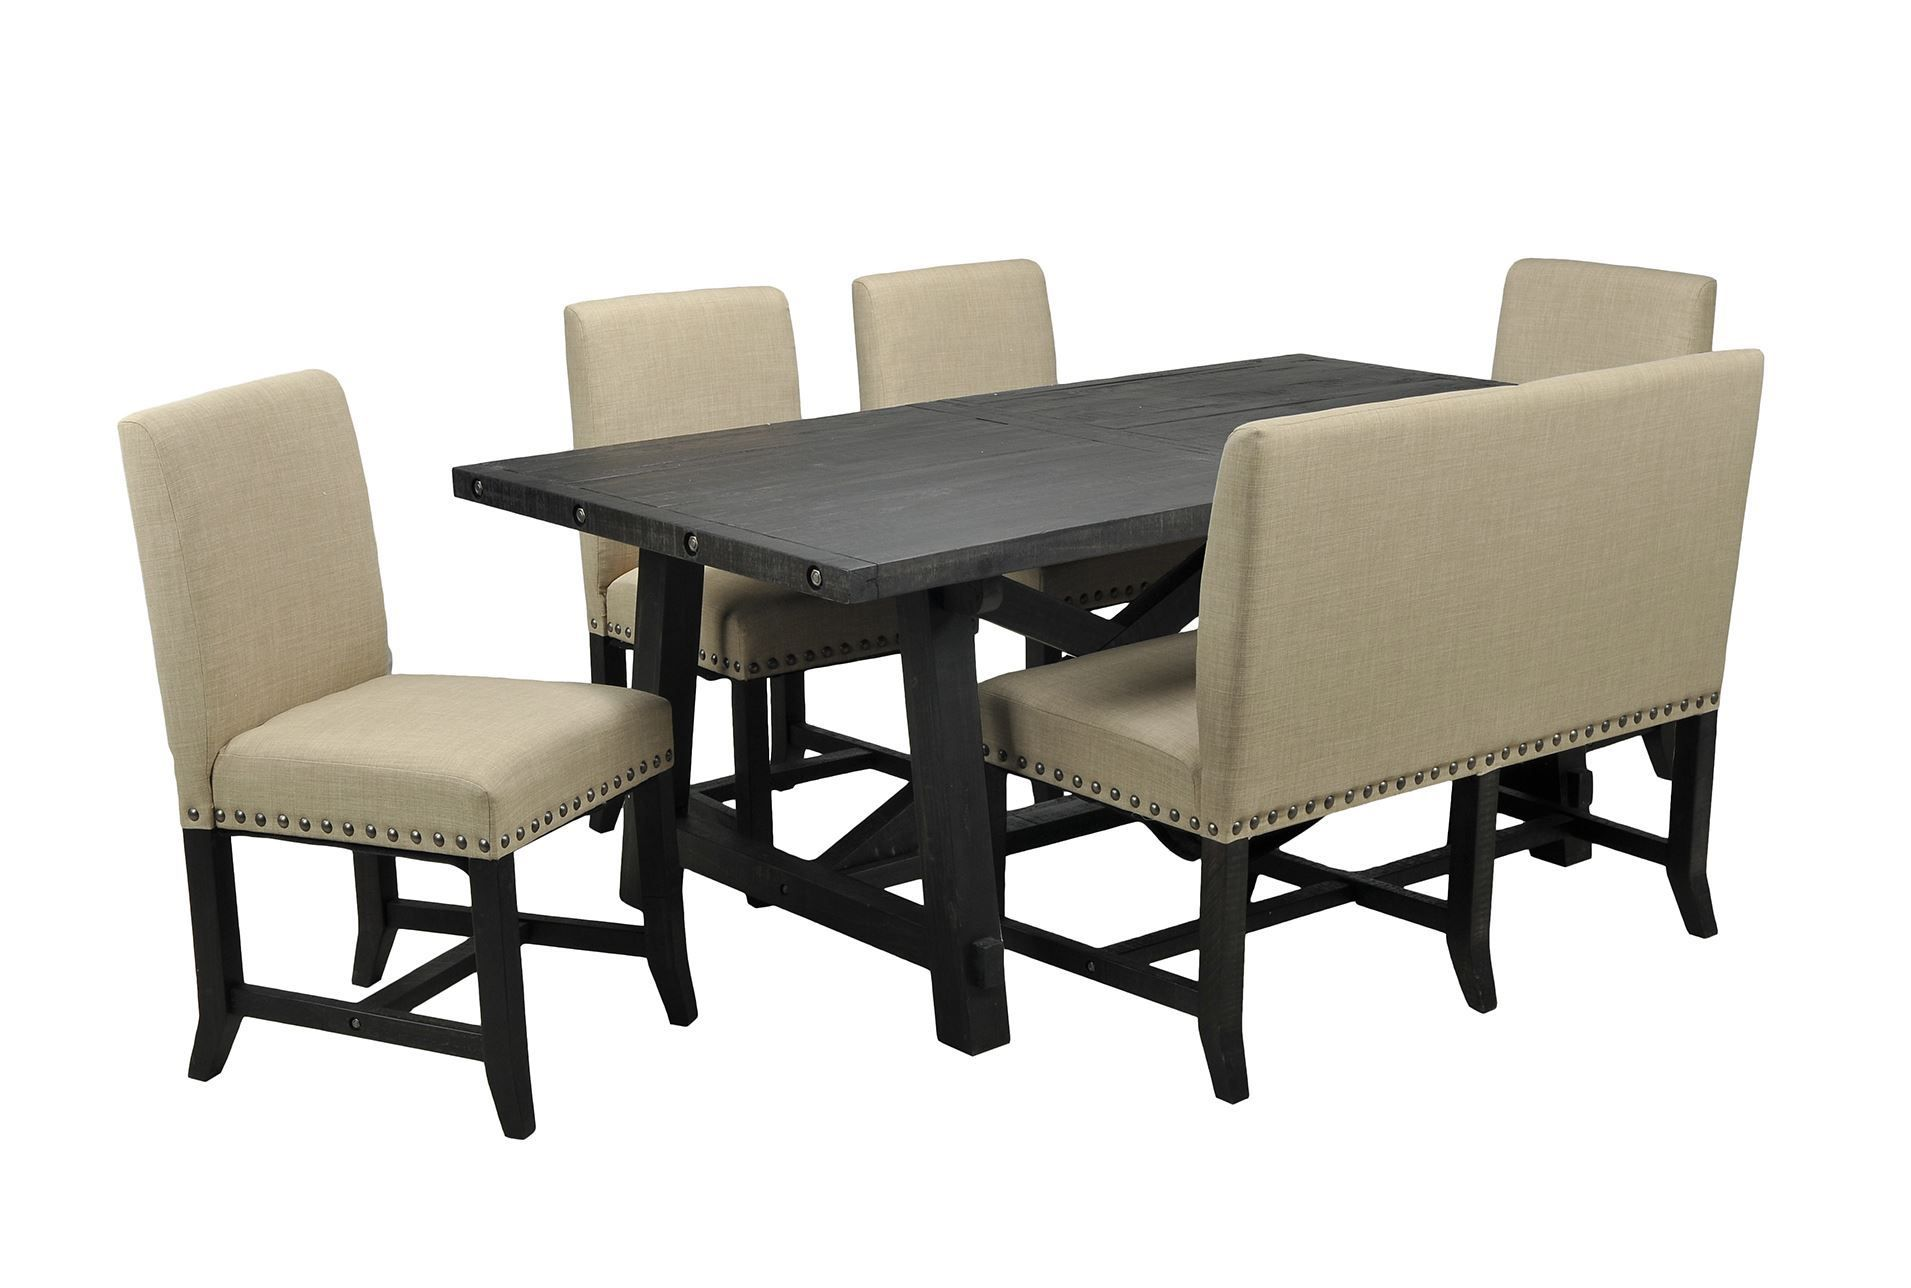 Jaxon 6 Piece Rectangle Dining Set W/Bench U0026 Uph Chairs. Dining SetsDining  TableSettee DiningDining RoomsUpholstered ChairsLiving ... Part 93